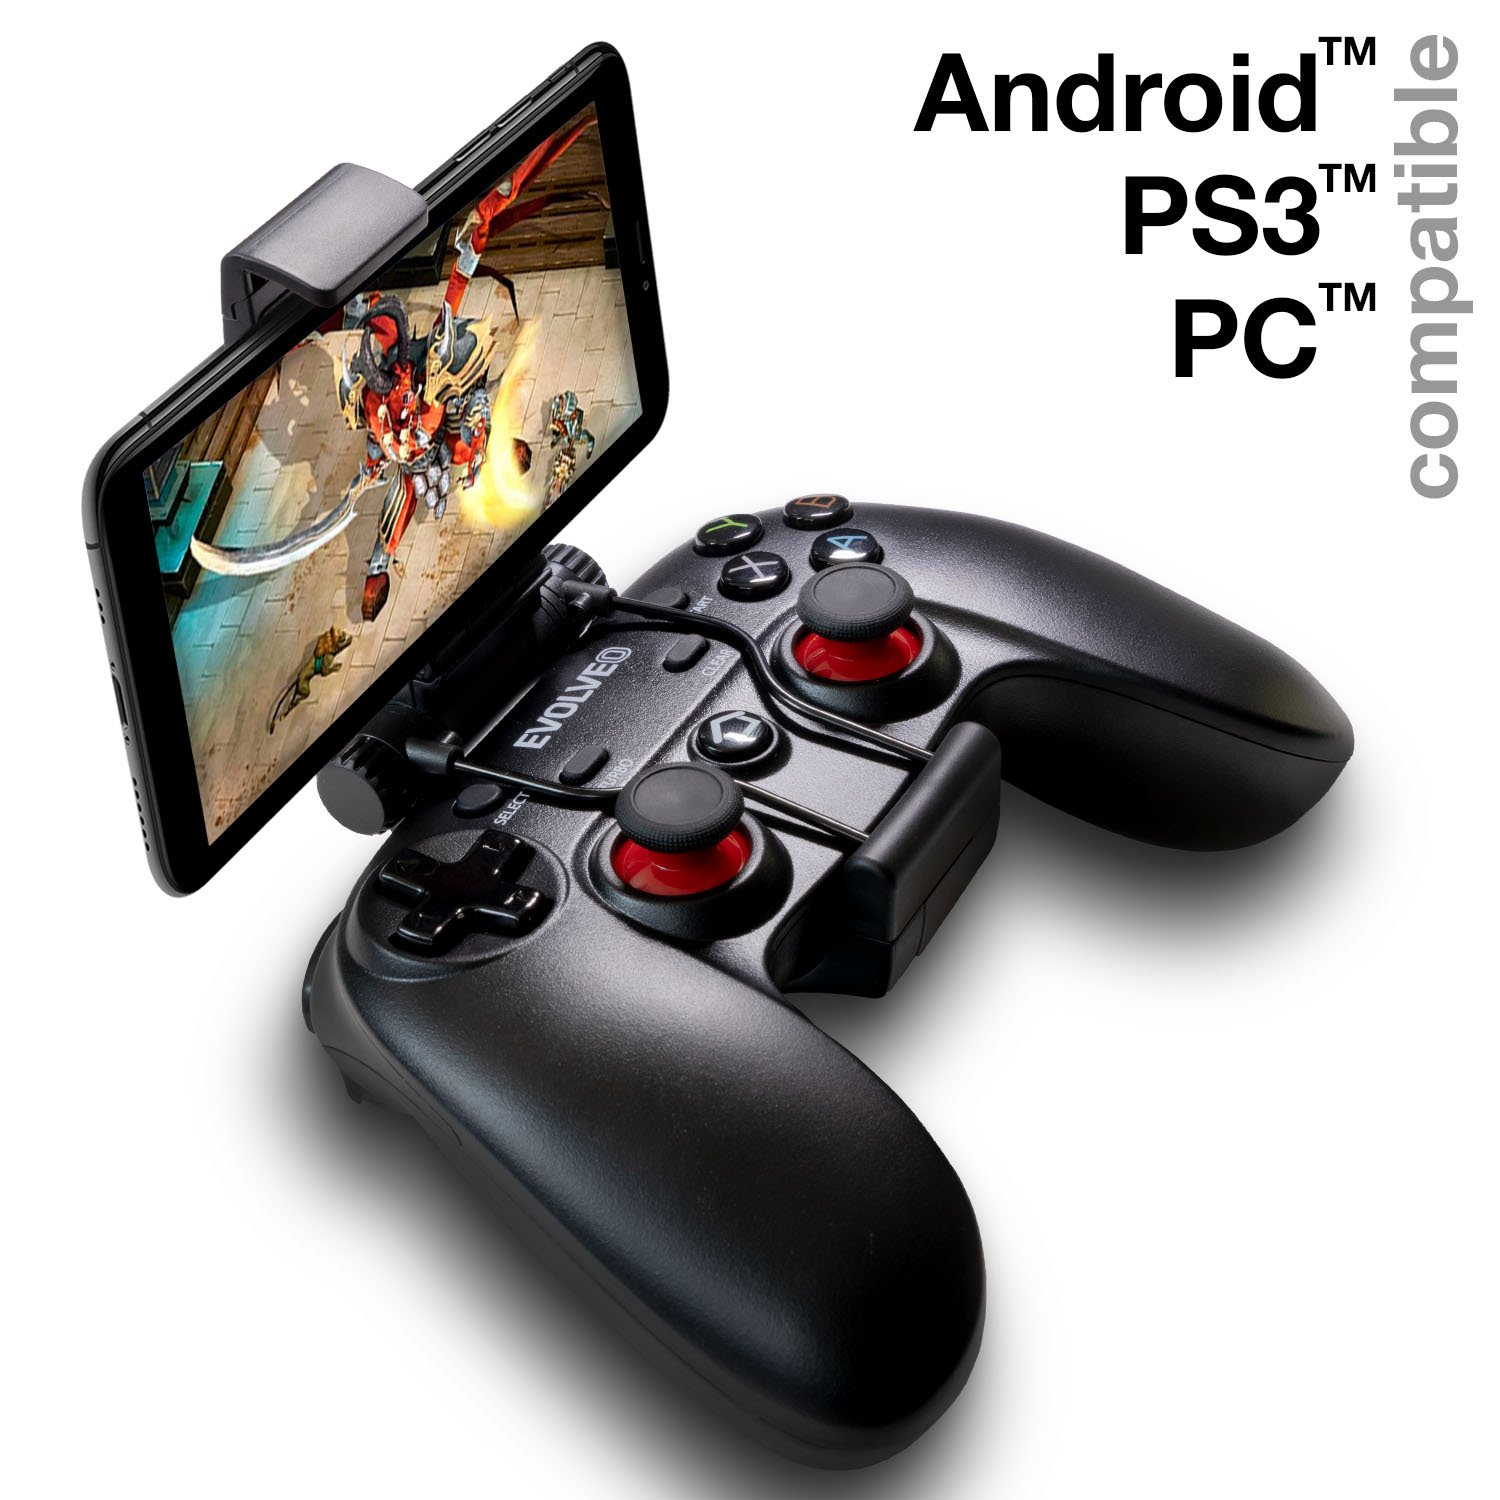 EVOLVEO Fighter F1, bezdrátový gamepad pro PC, PlayStation 3, Android box/smartphone]